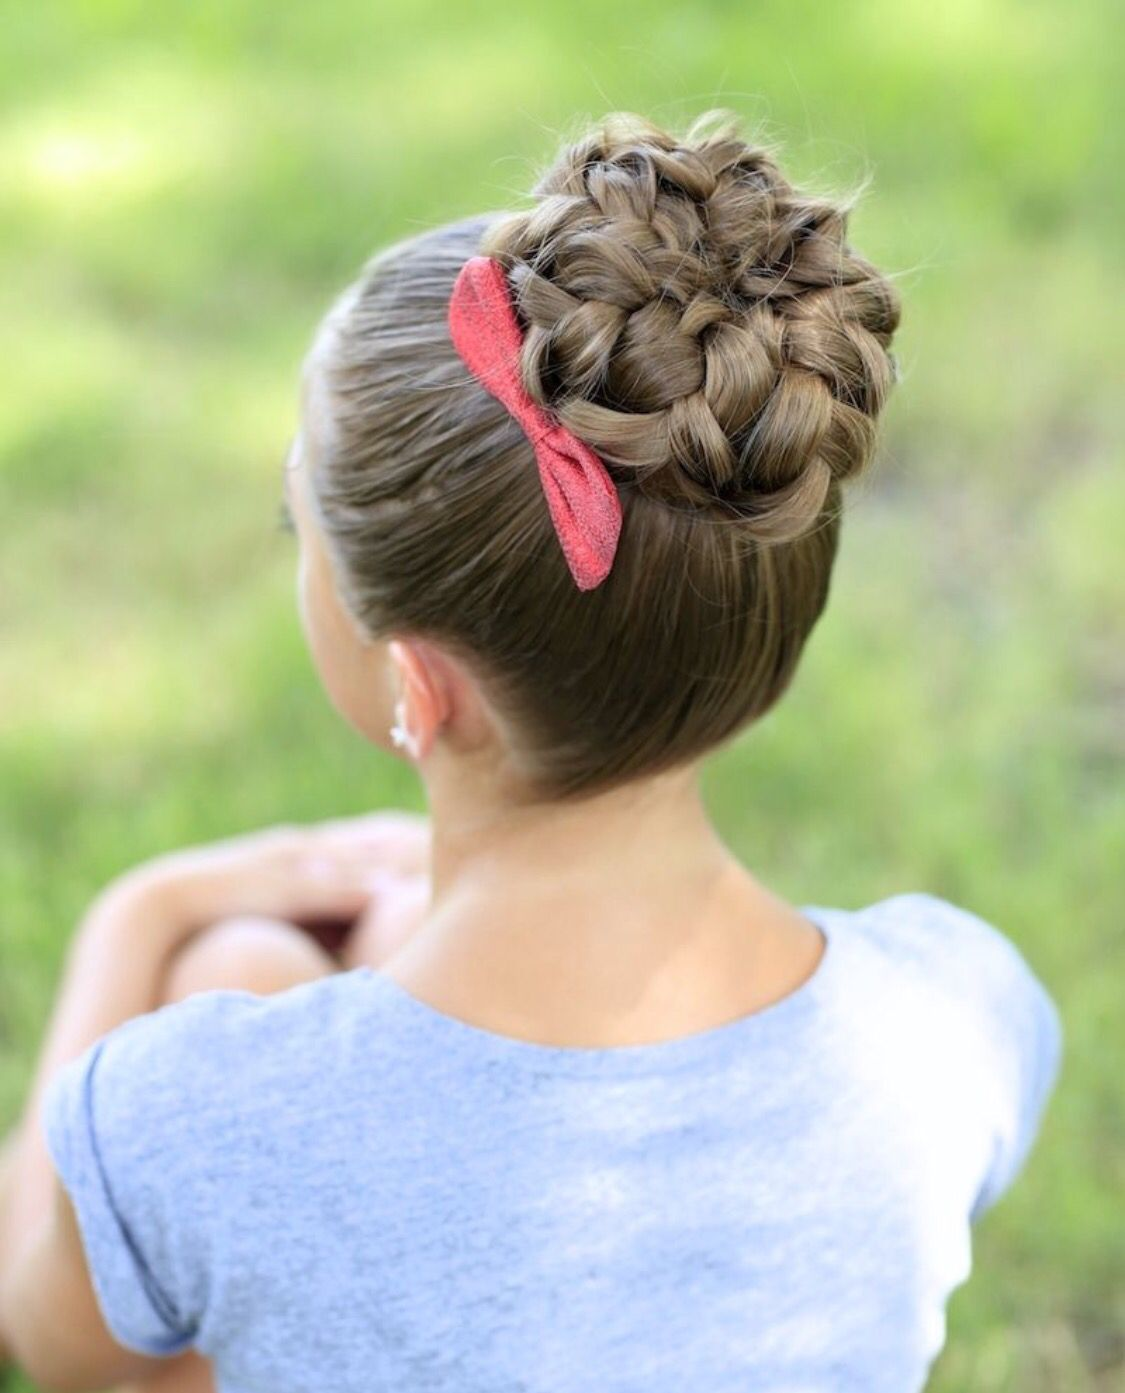 Cute Bun For Dance Recitals Or Just To Get Your Hair Out